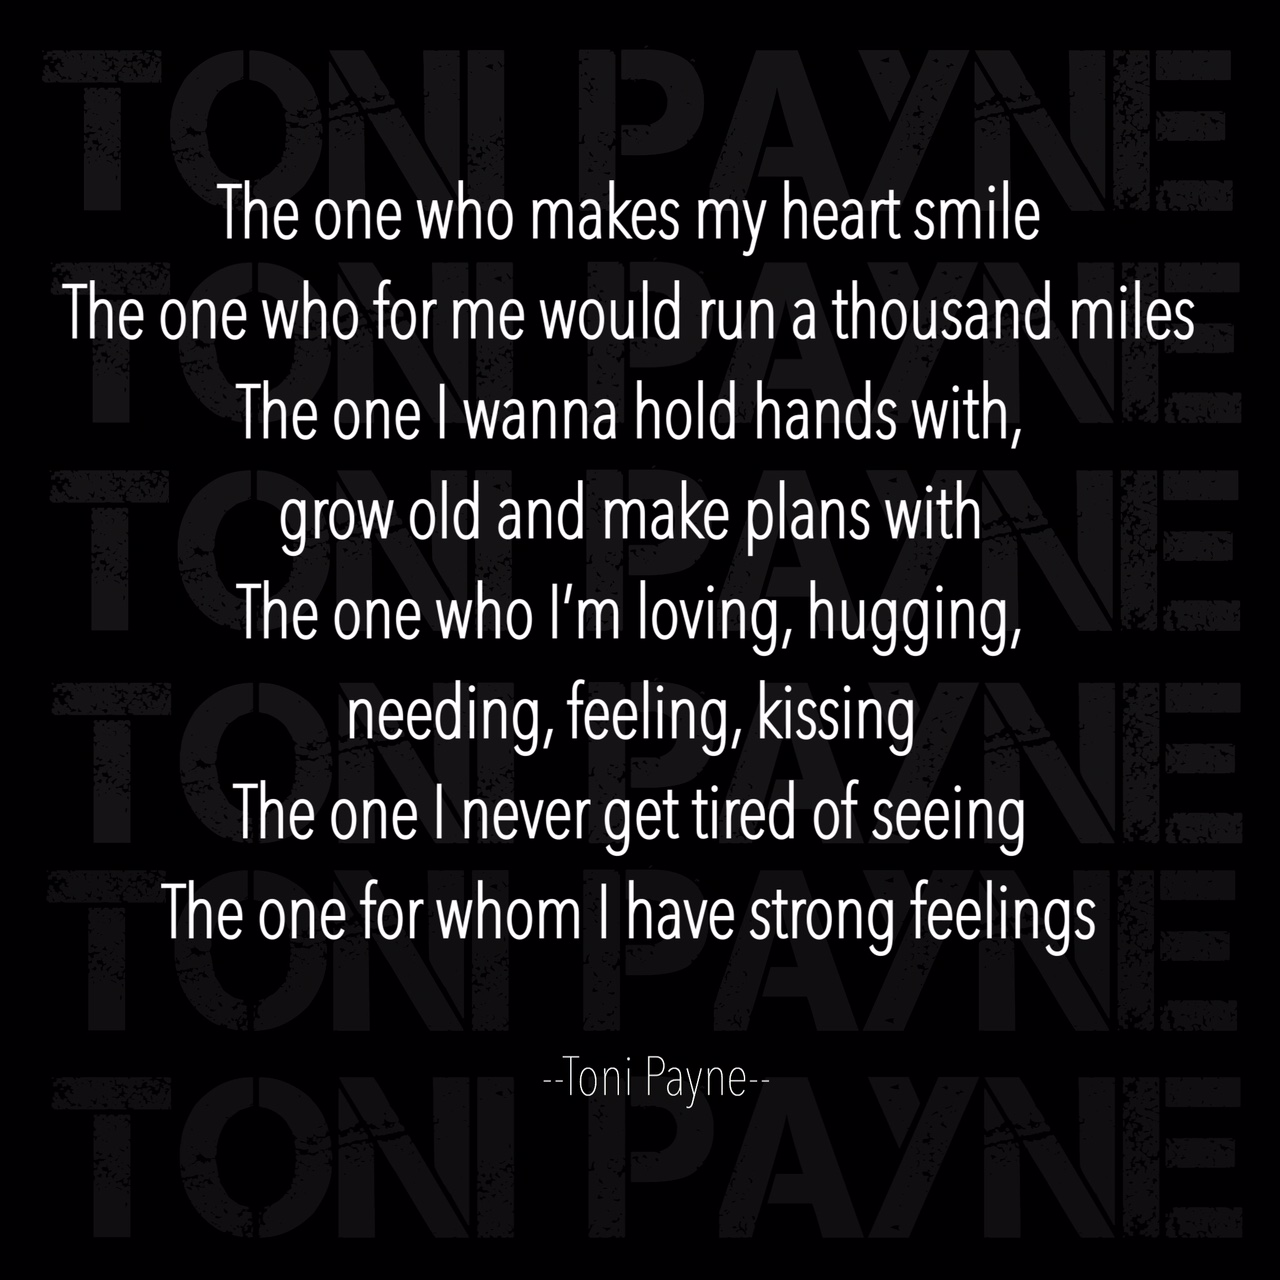 Poetry Love Quotes - The one who makes my heart smile